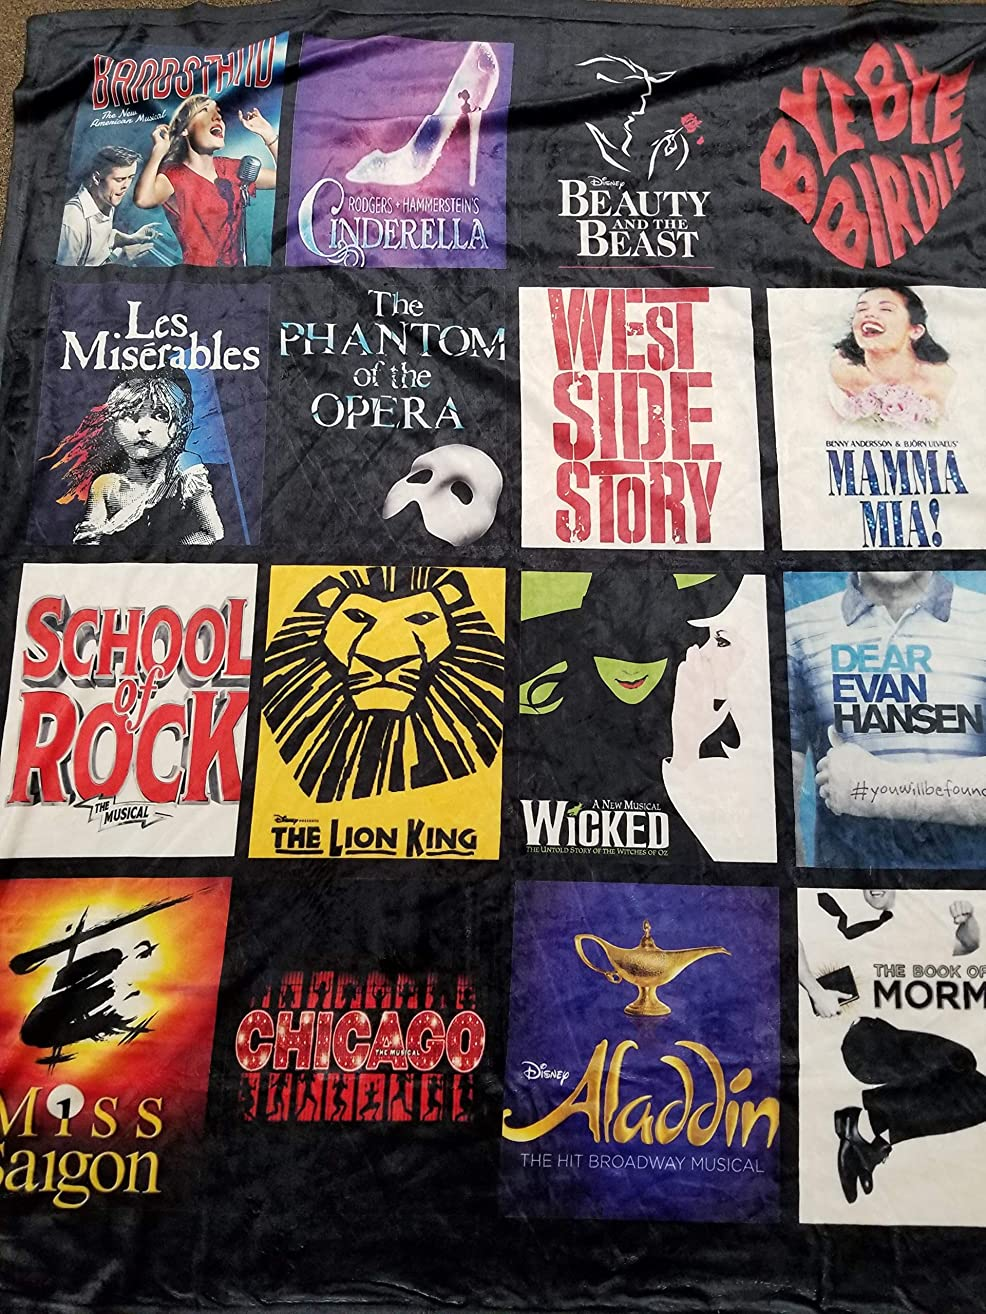 Broadway Theater Favorite Shows Custom Blanket- Favorite Broadway Shows Blanket- Personalized Blanket for your Theater Buff